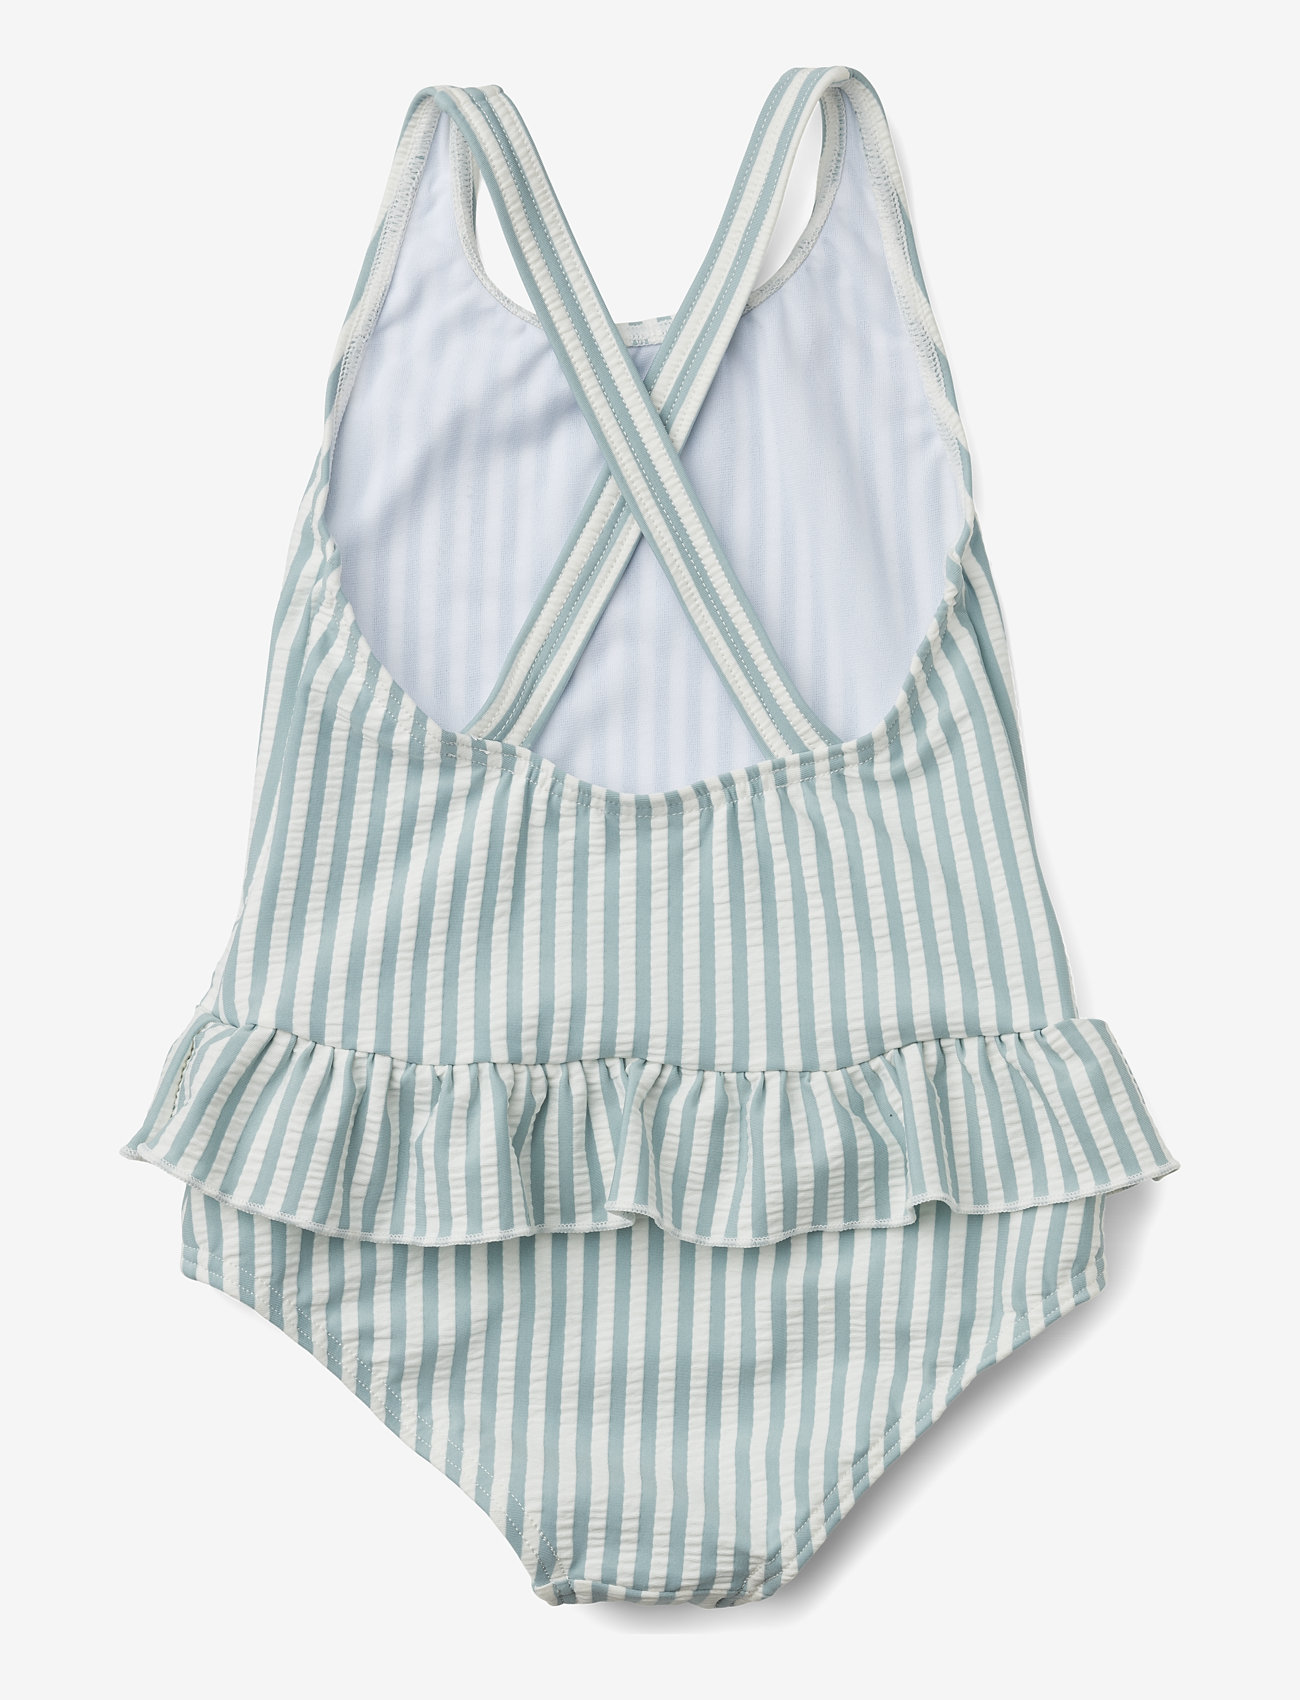 Liewood - Amara swimsuit seersucker - swimsuits - y/d stripe - 1